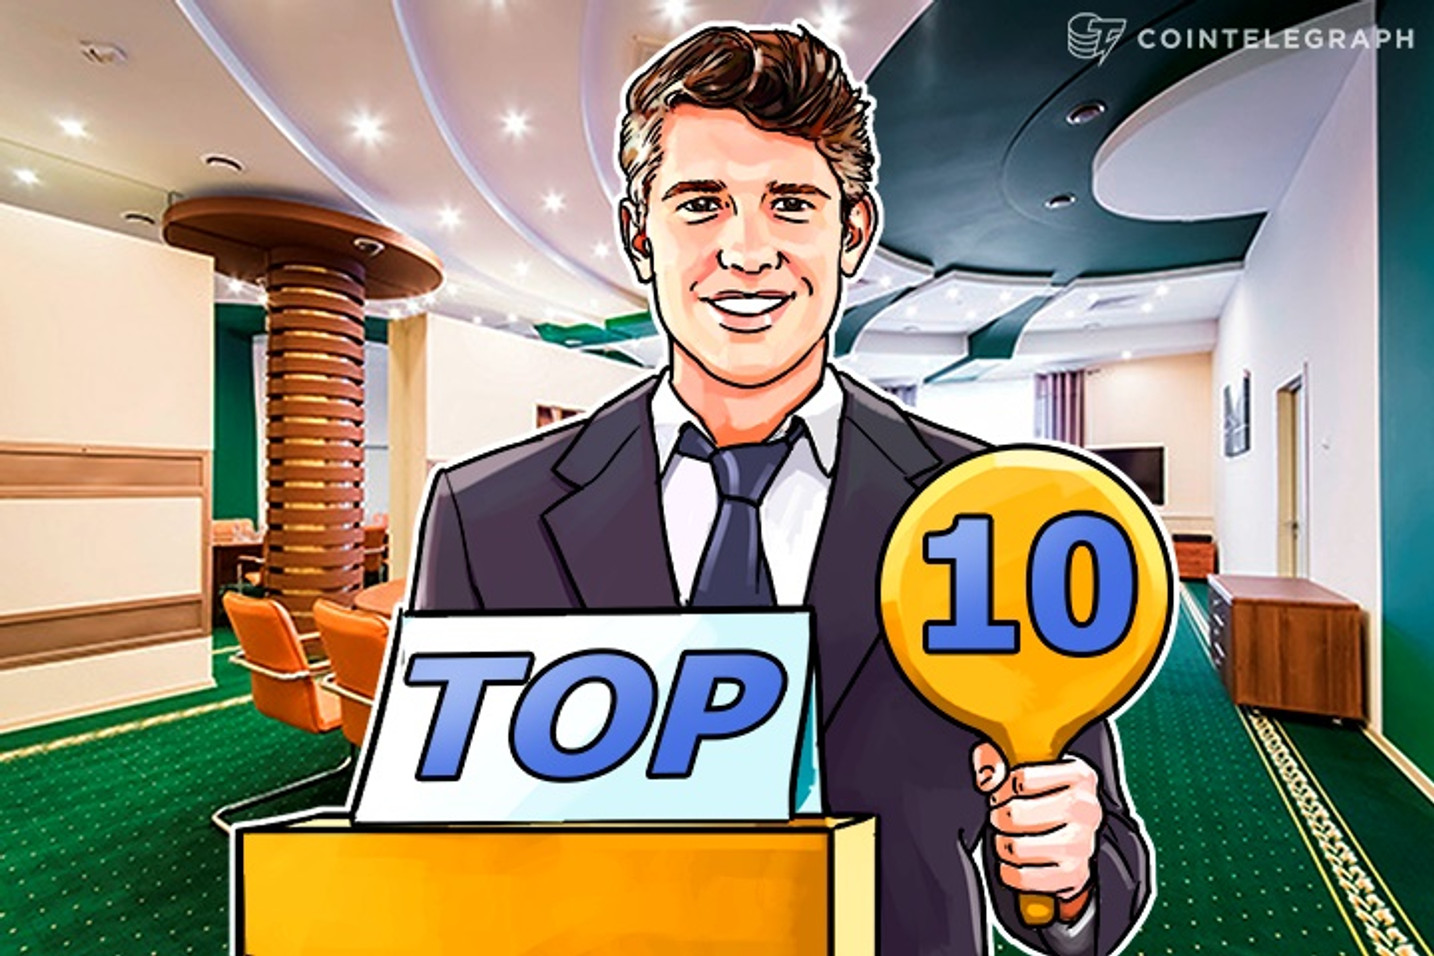 The Blockchain Revolution: 10 European Fintech Startups to Watch in 2016